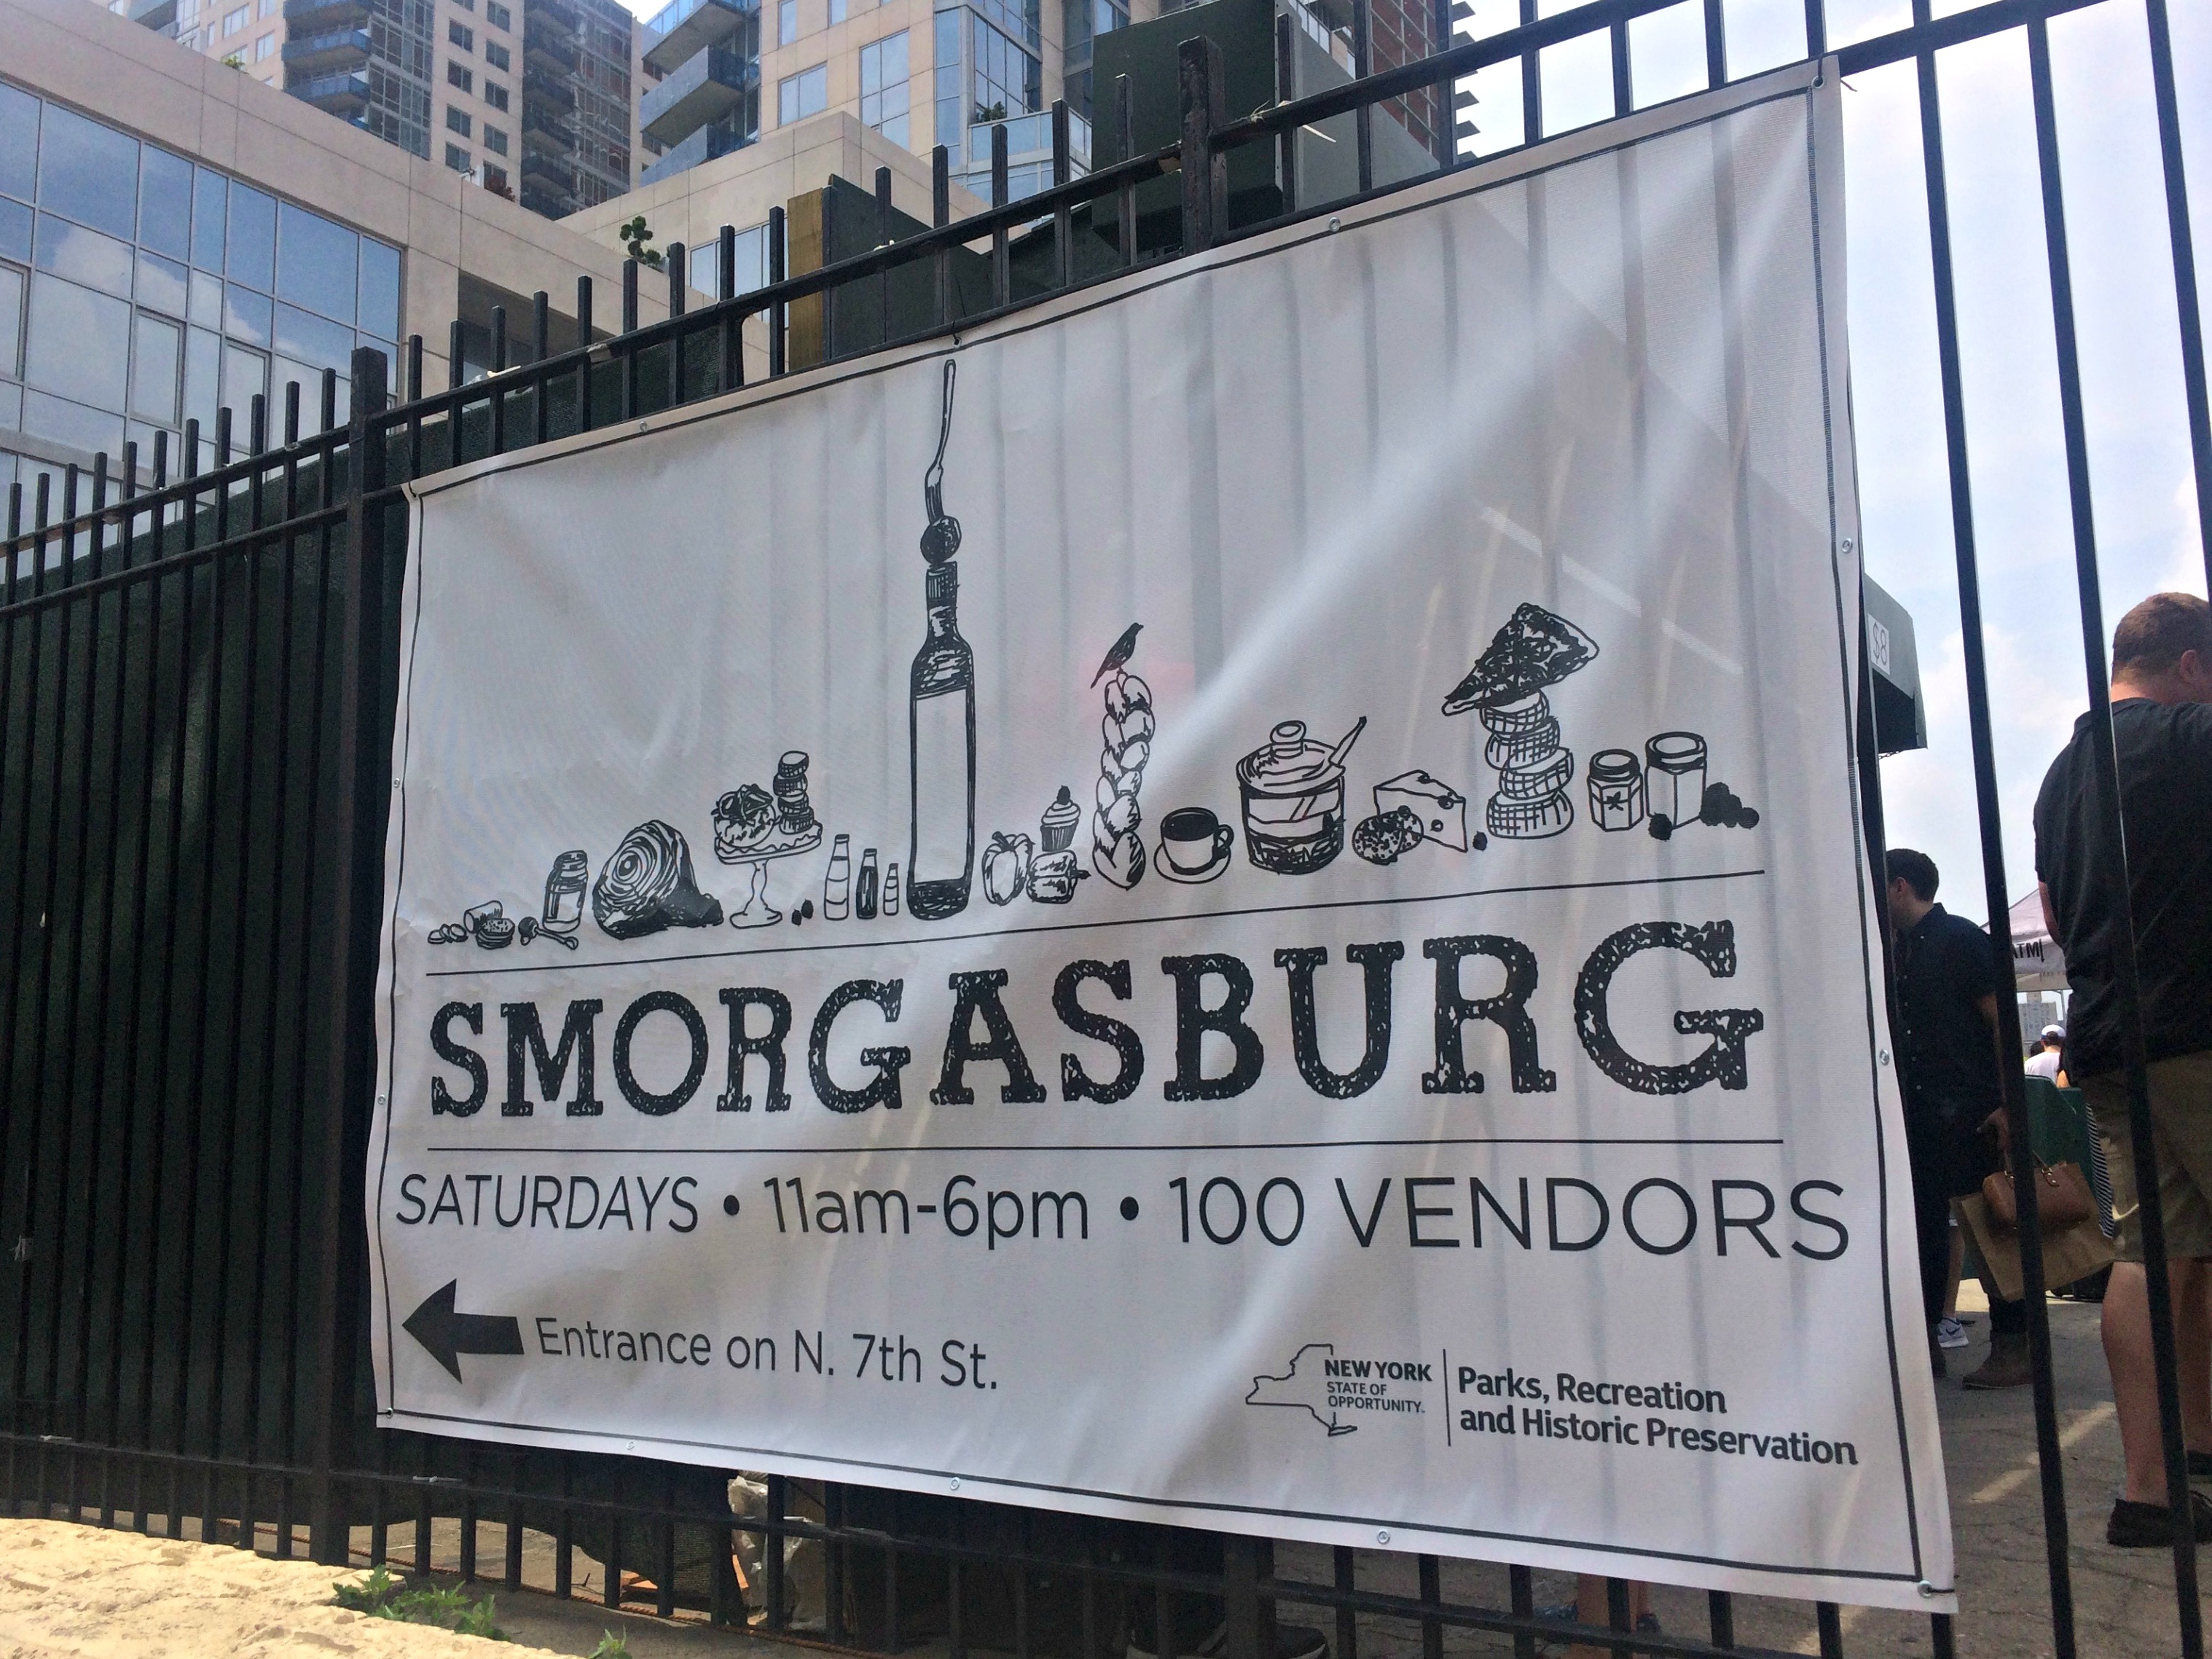 Smorgasburg in Williamsburg, Brooklyn